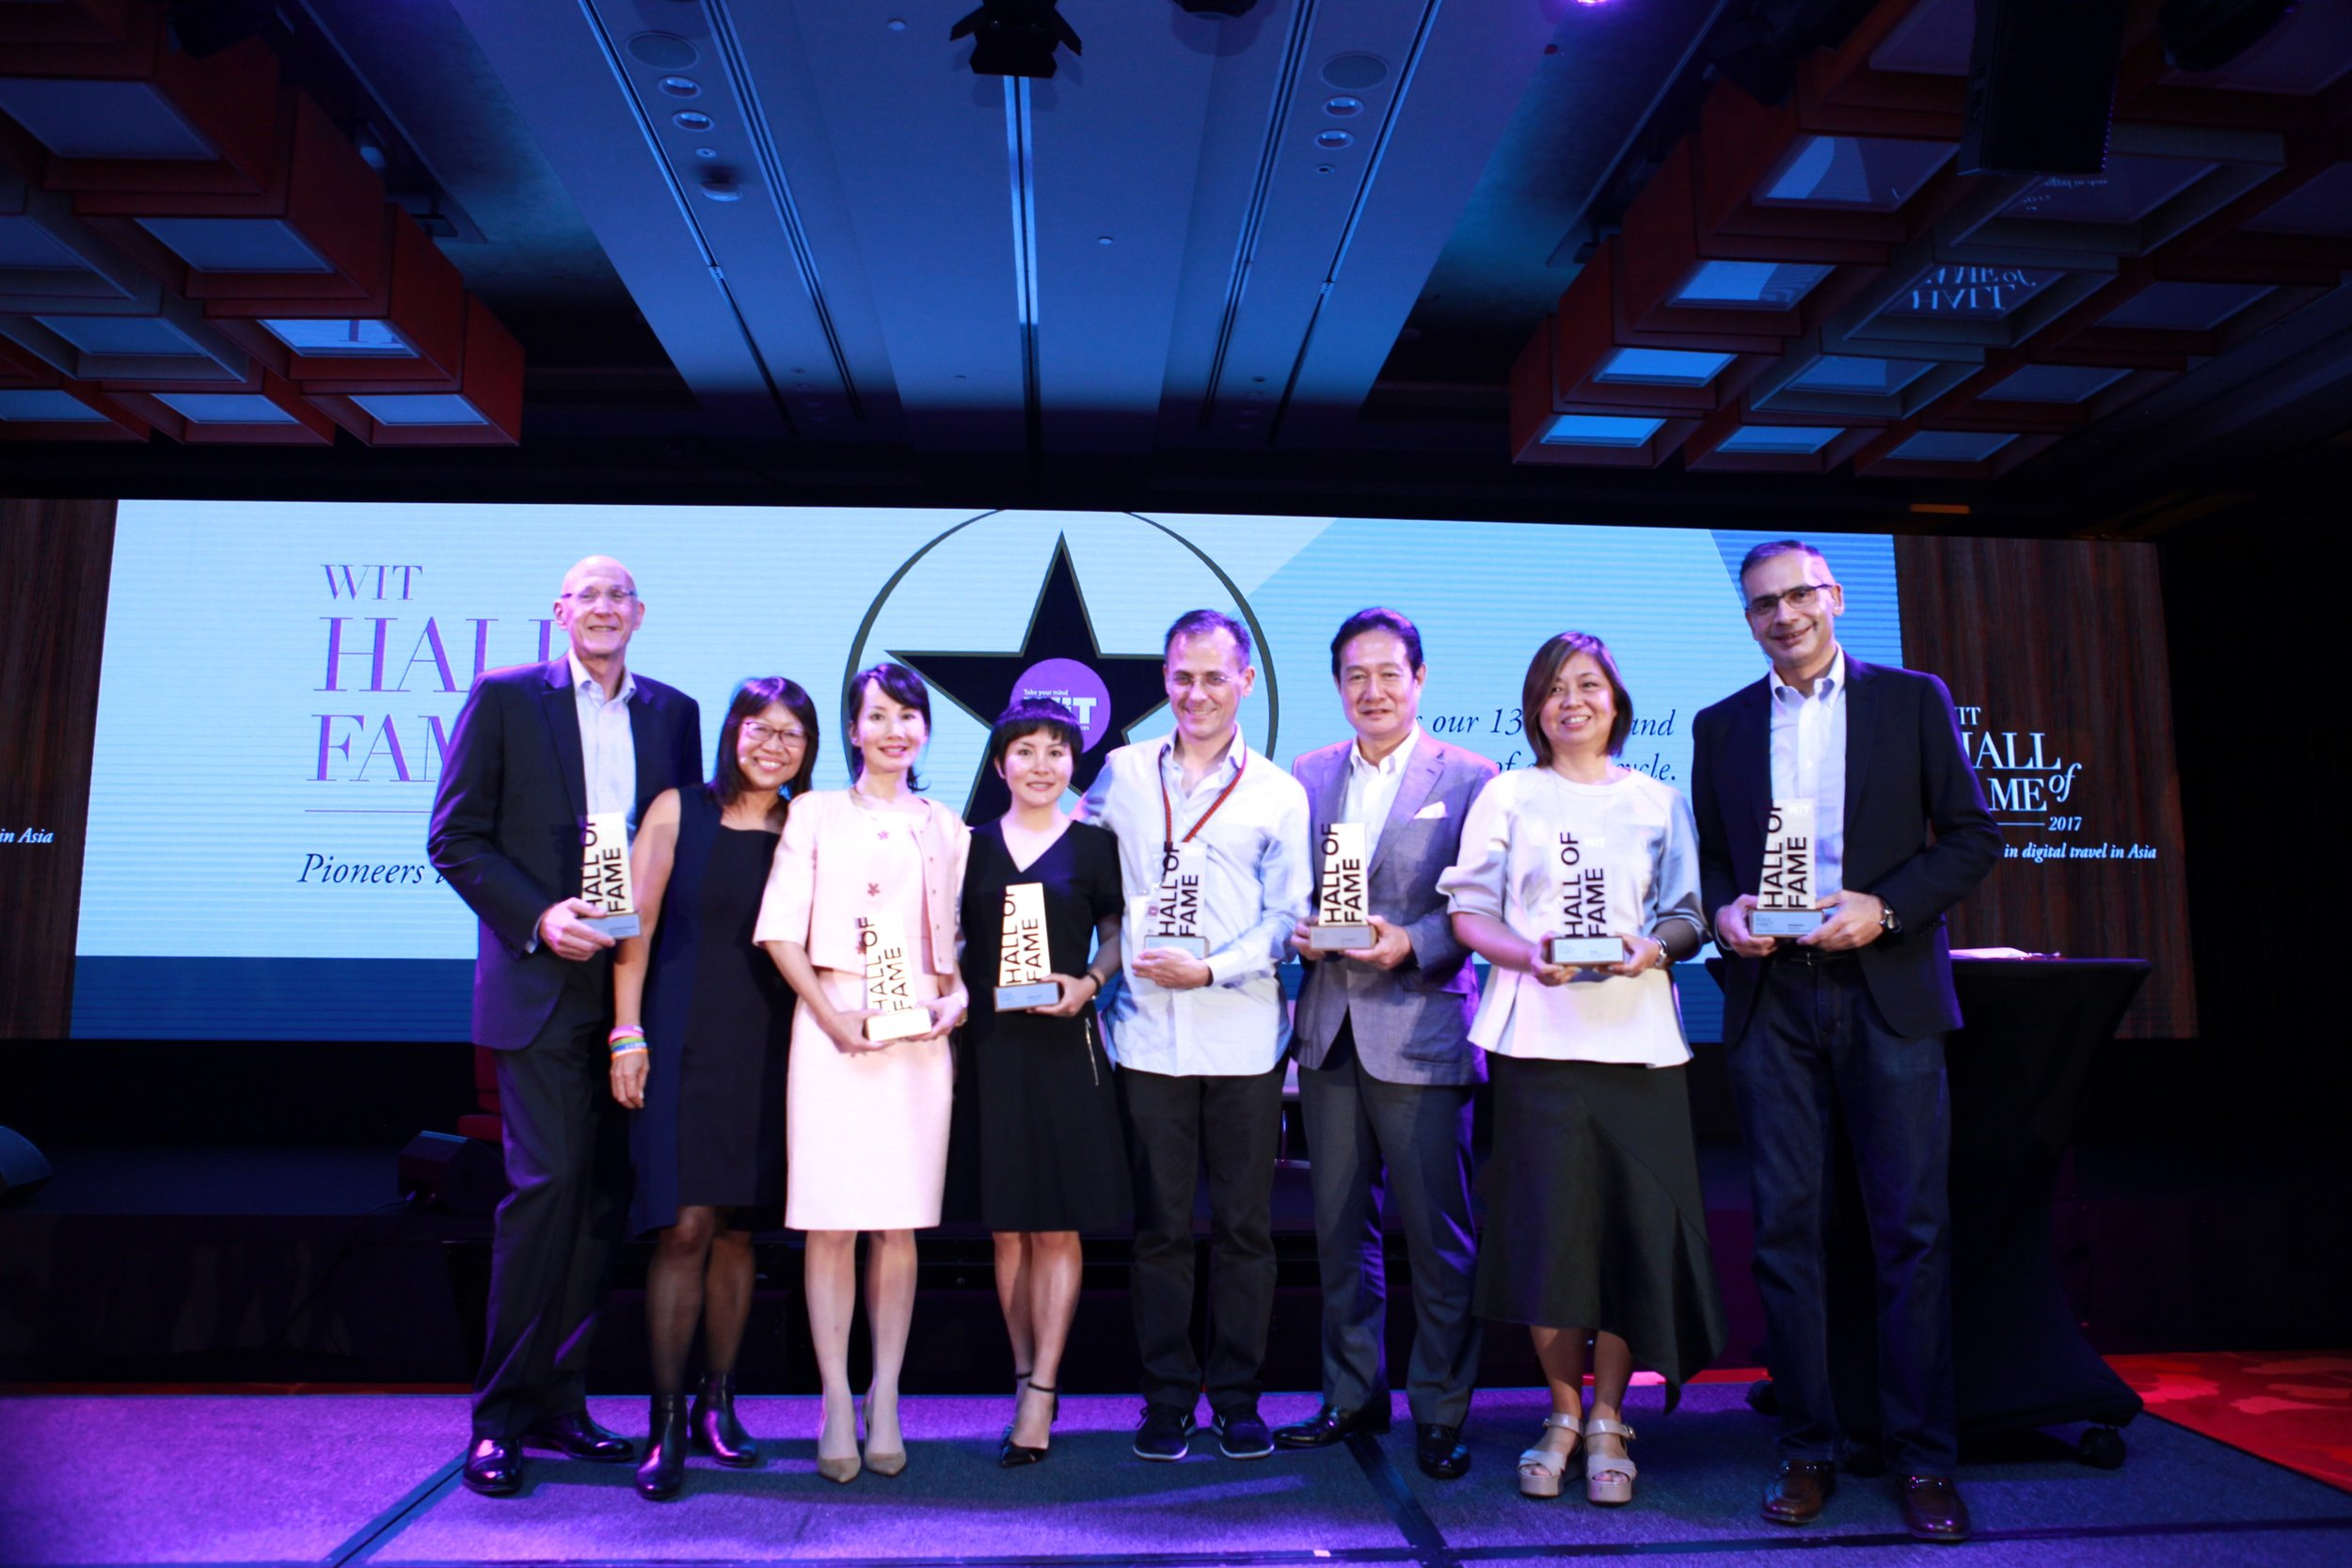 Each year, we will recognise more individuals and companies who have left their mark on travel in APAC.